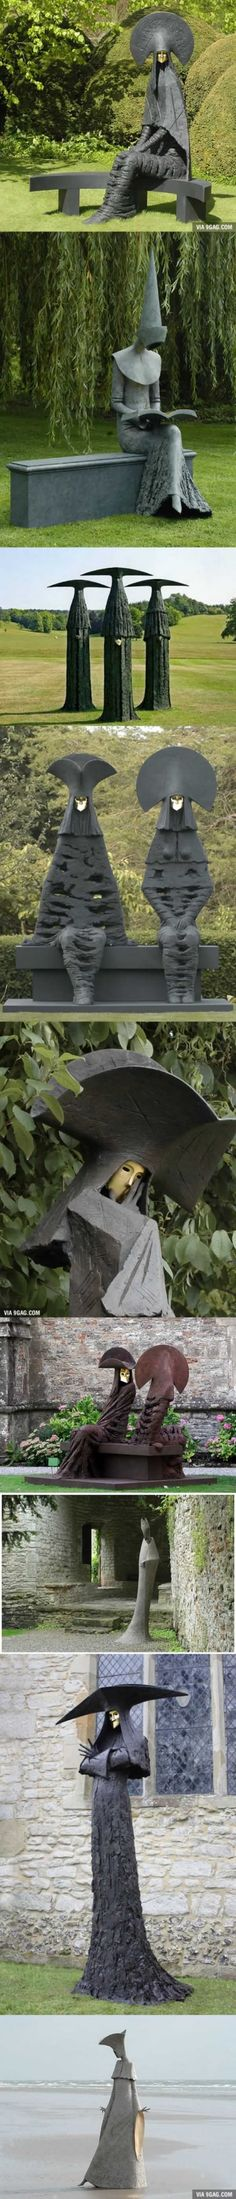 The sculptures of Philip Jackson. Winner of National Peace Sculpture Competition, Manchester City Council, 1987.